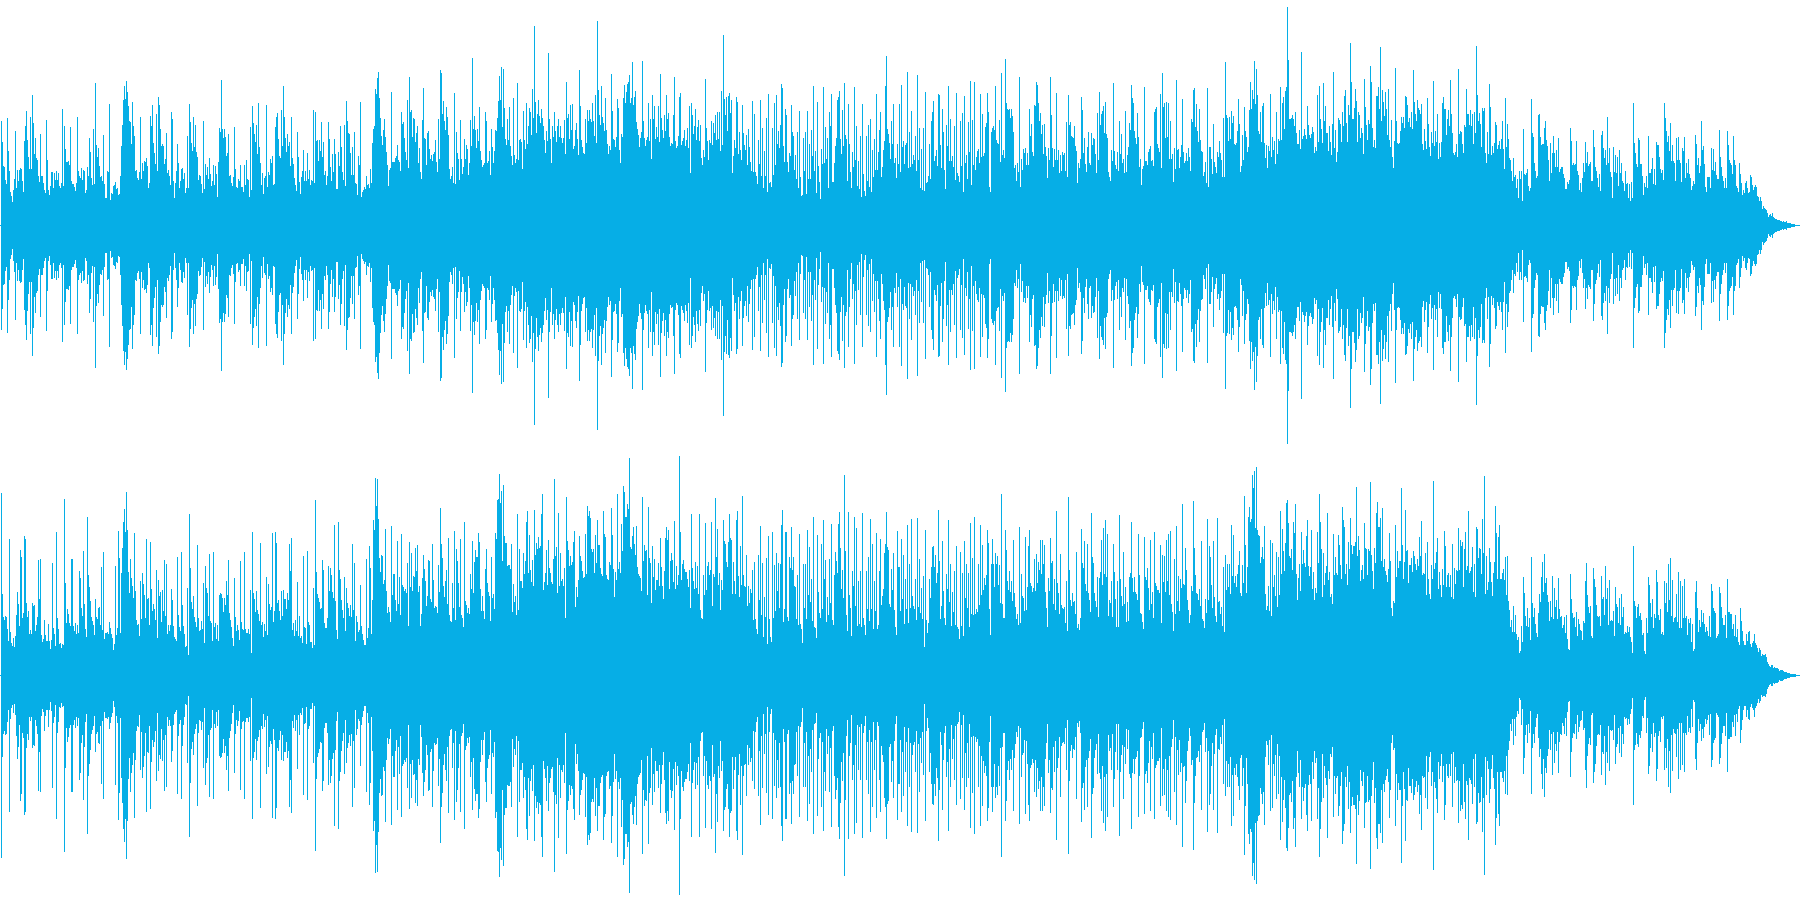 Melodic, loving a...'s reproduced waveform